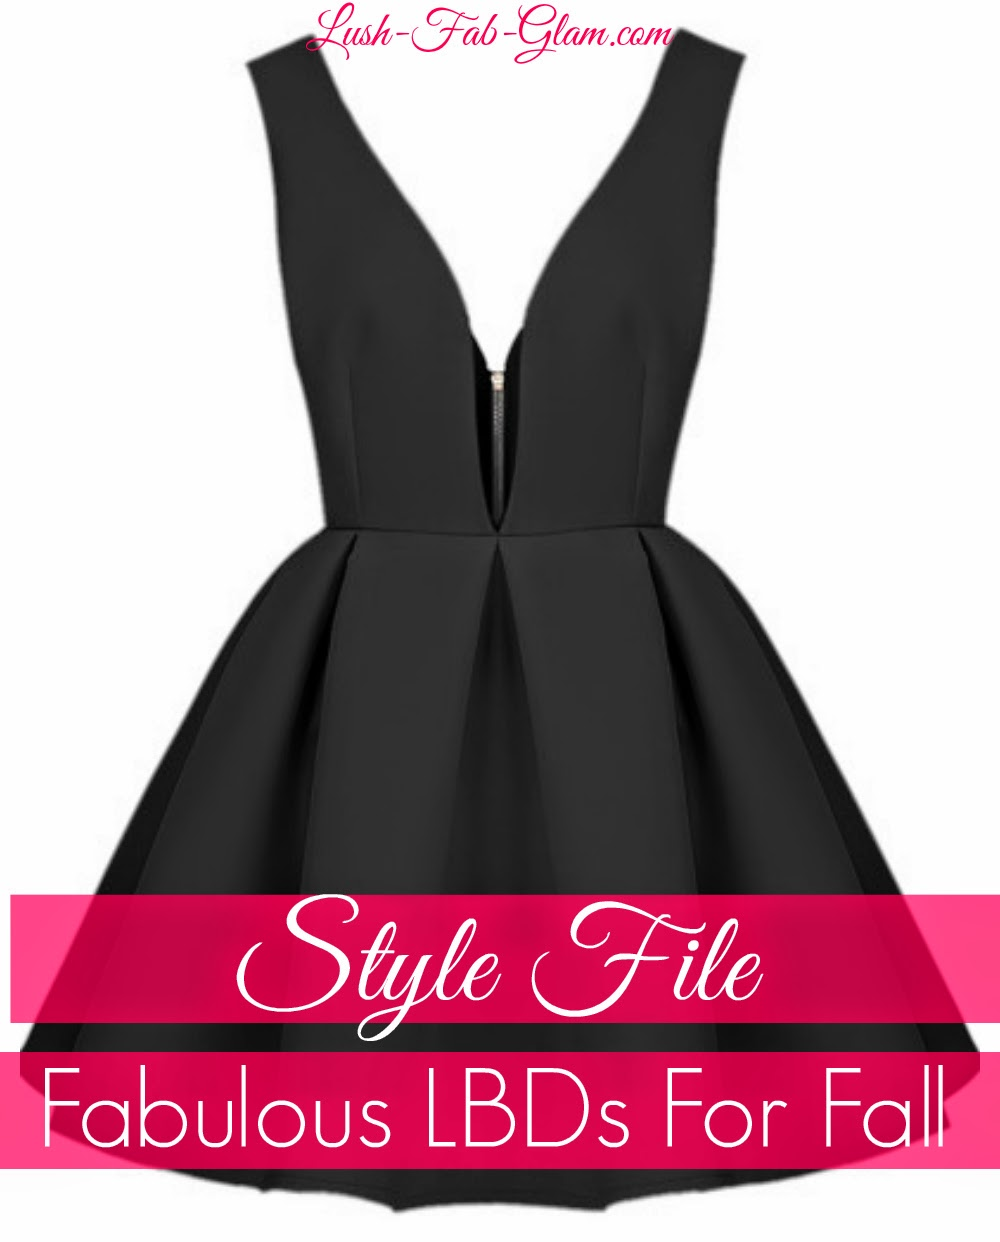 http://www.lush-fab-glam.com/2014/09/style-file-5-fabulous-lbds-for-fall.html